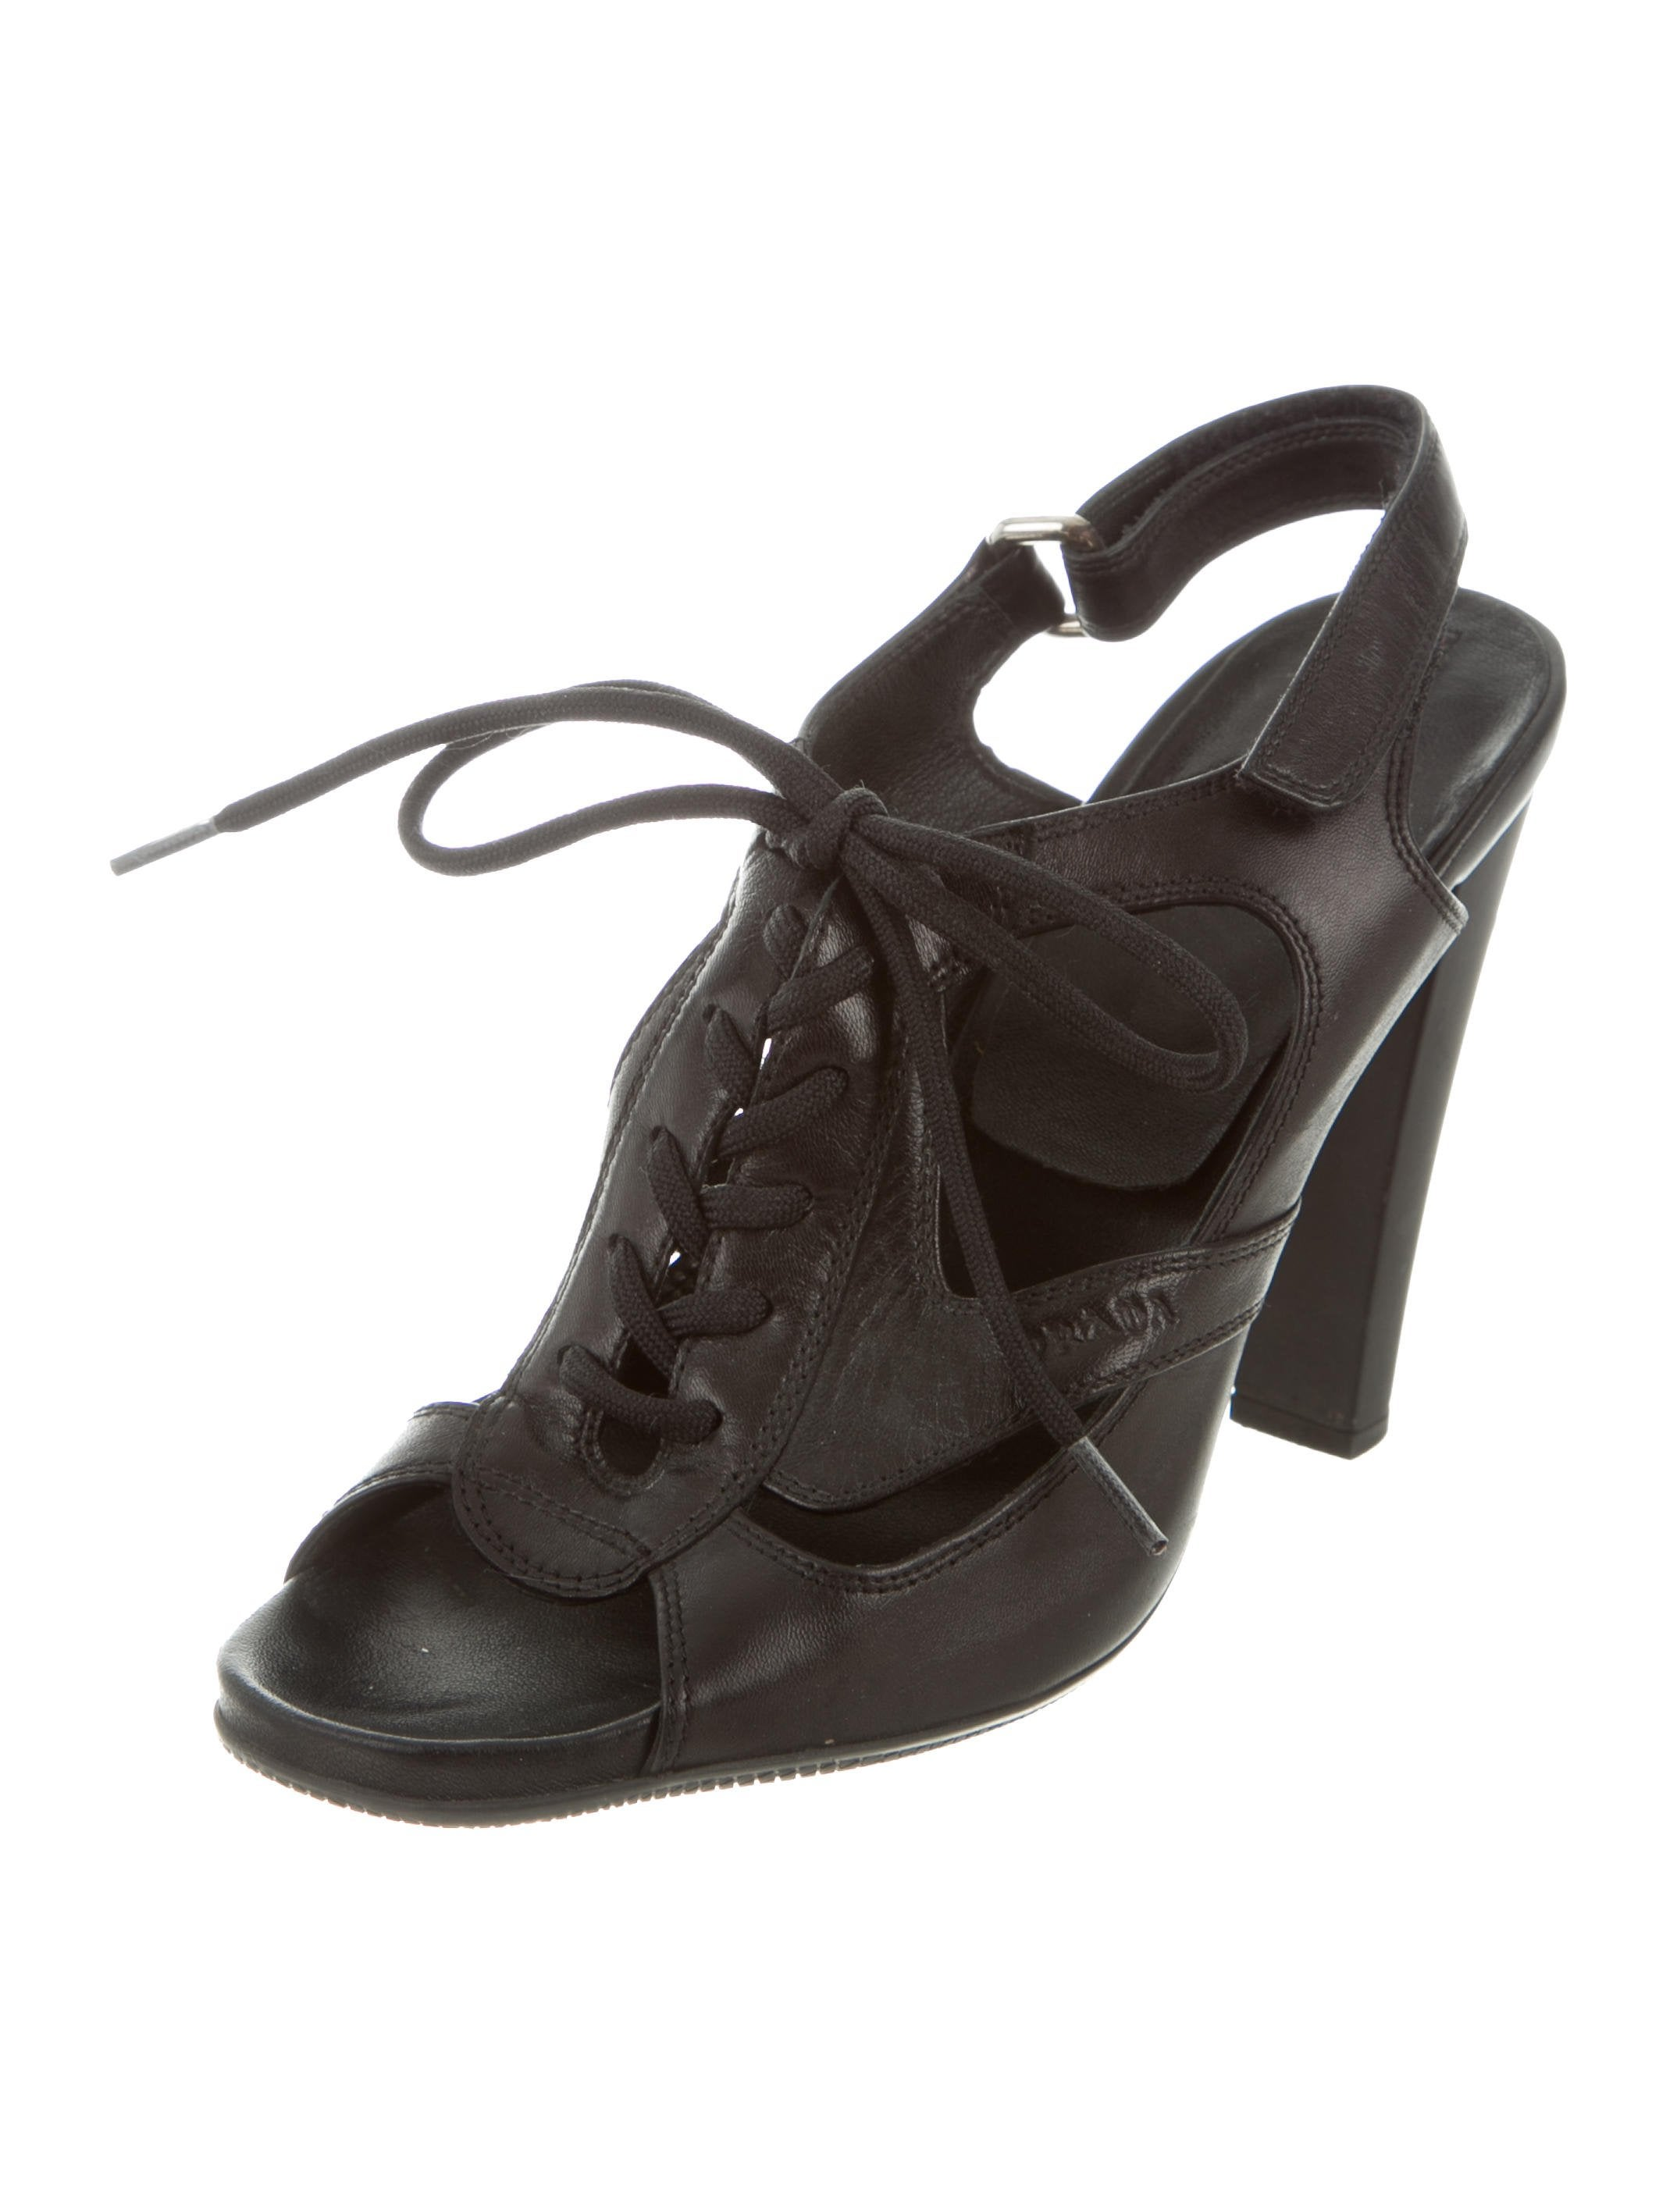 Prada Sport Lace-Up Cage Sandals recommend cheap online free shipping pay with paypal cheap sale looking for free shipping 2014 new 0OcB6G7Ab